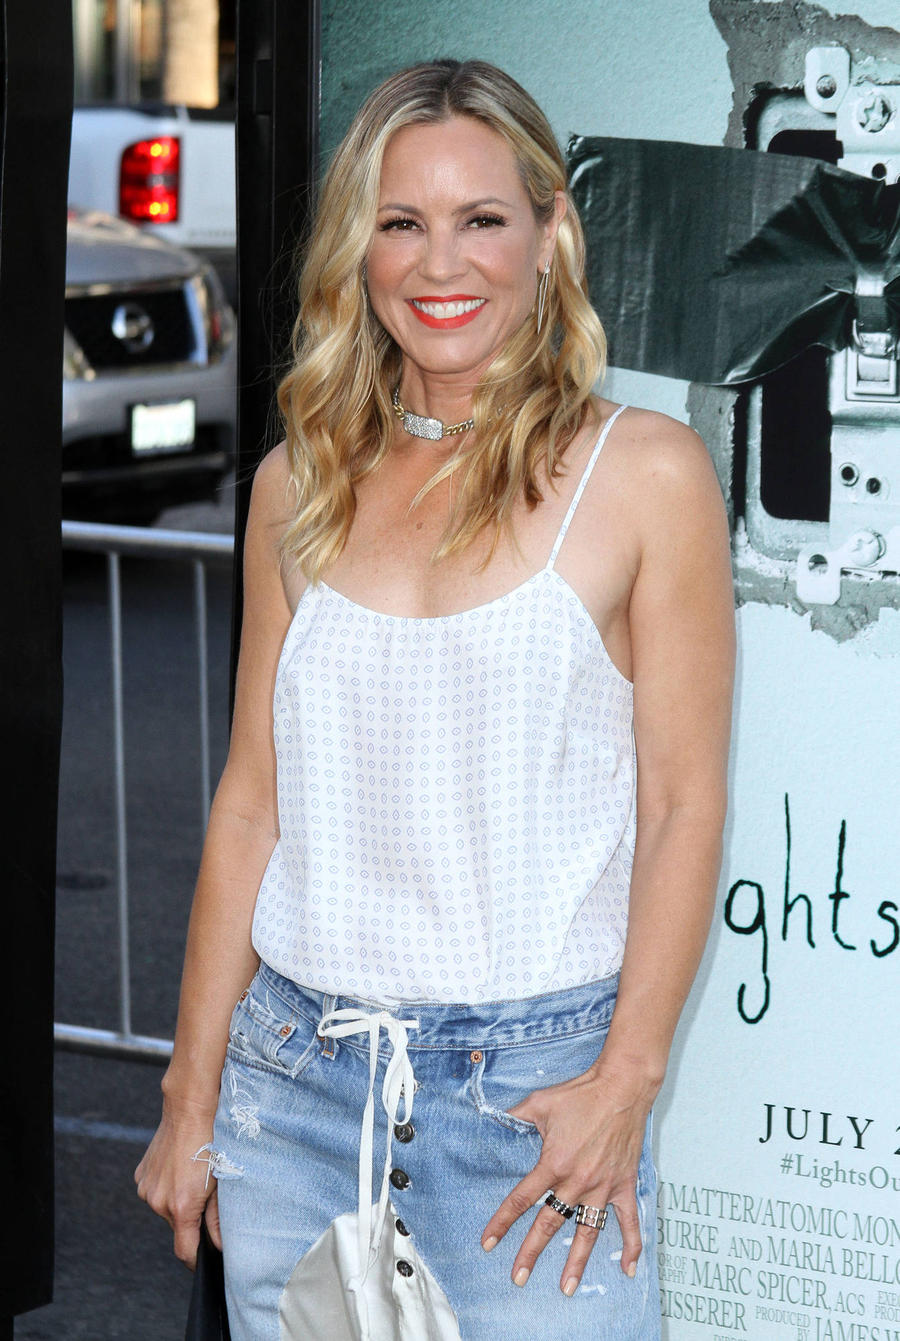 Maria Bello Used Bipolar Disorder To Her Advantage For Lights Out